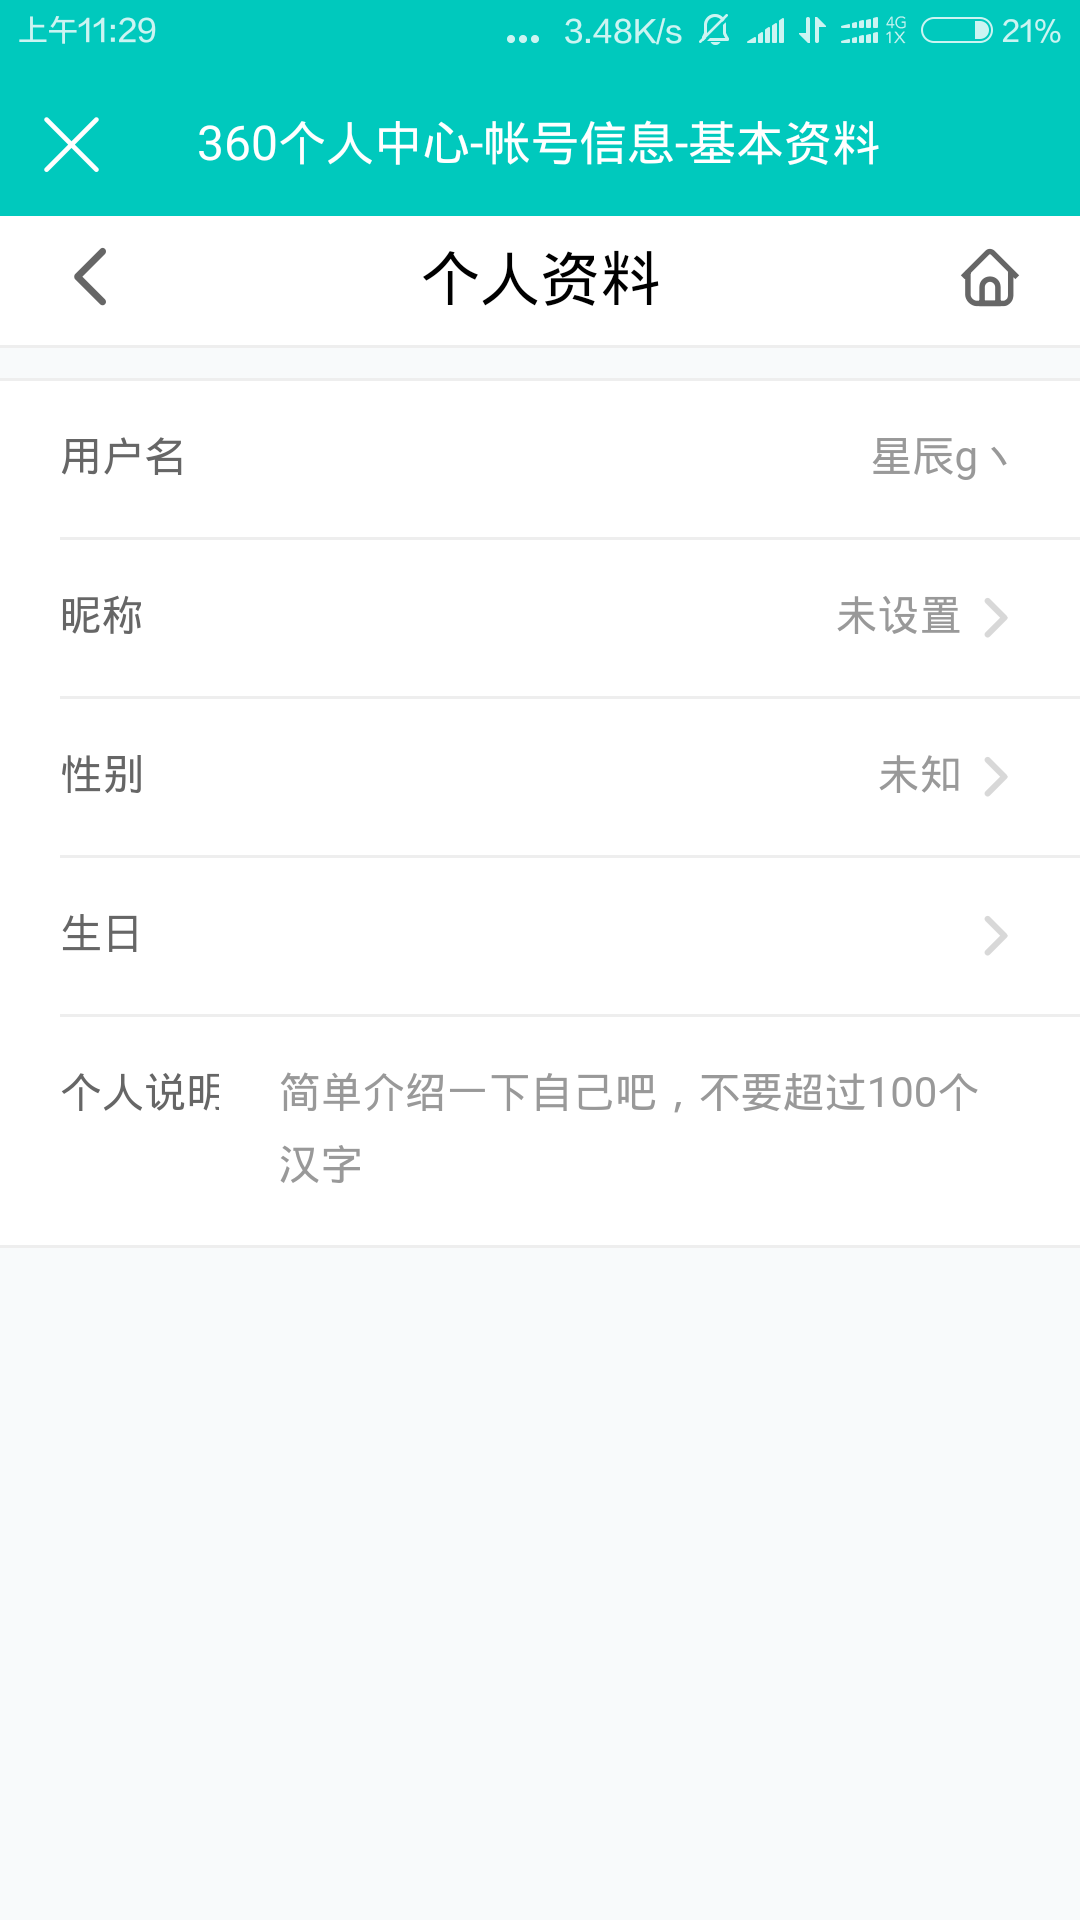 Screenshot_2018-06-06-11-29-08_com.qiku.bbs.png